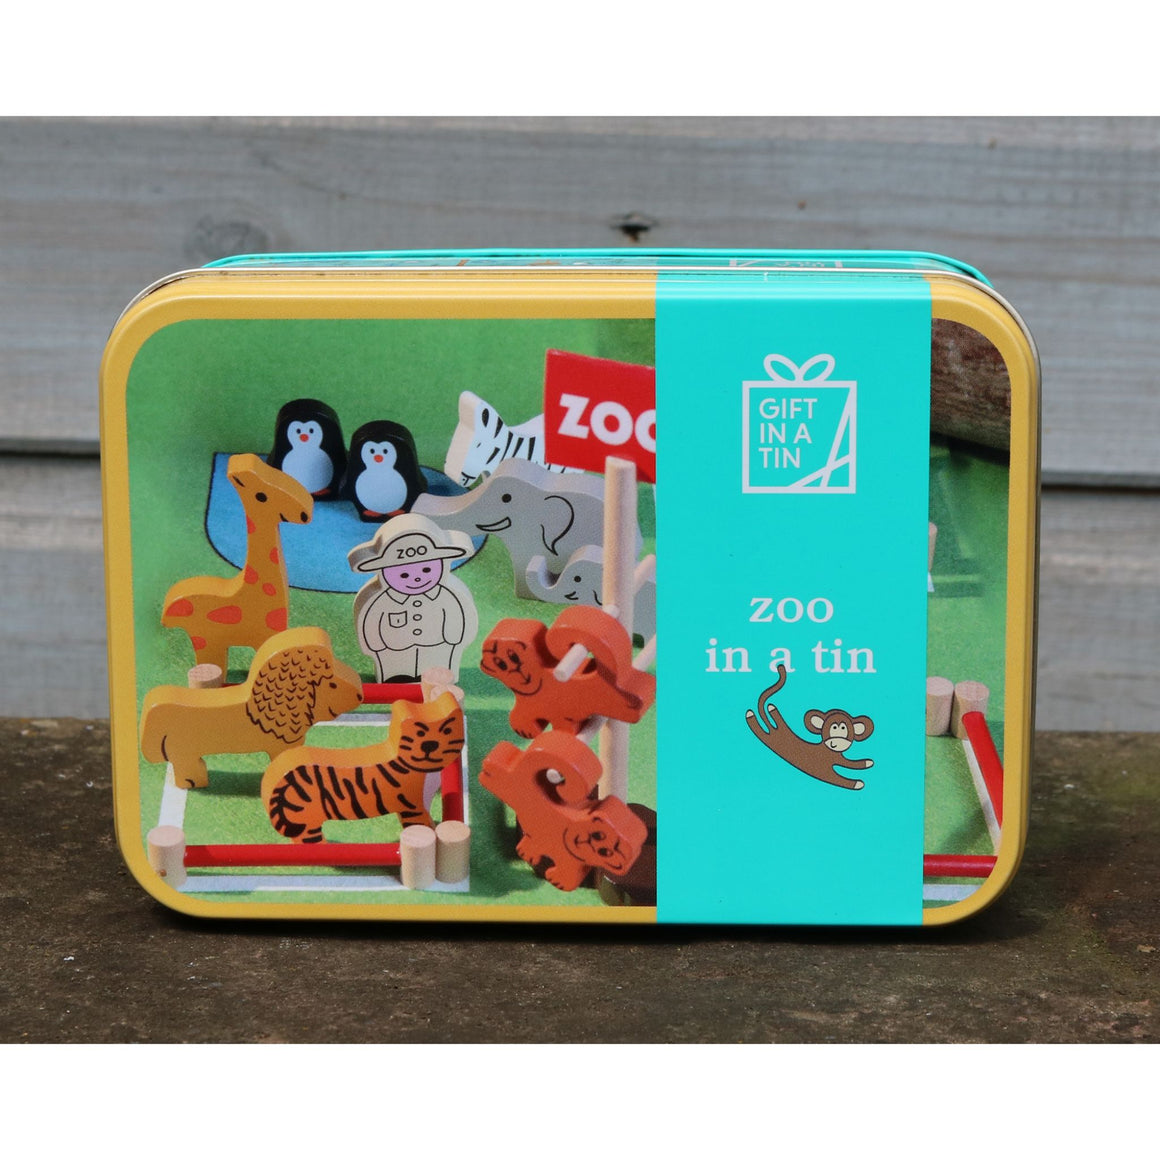 Zoo Gift in a Tin